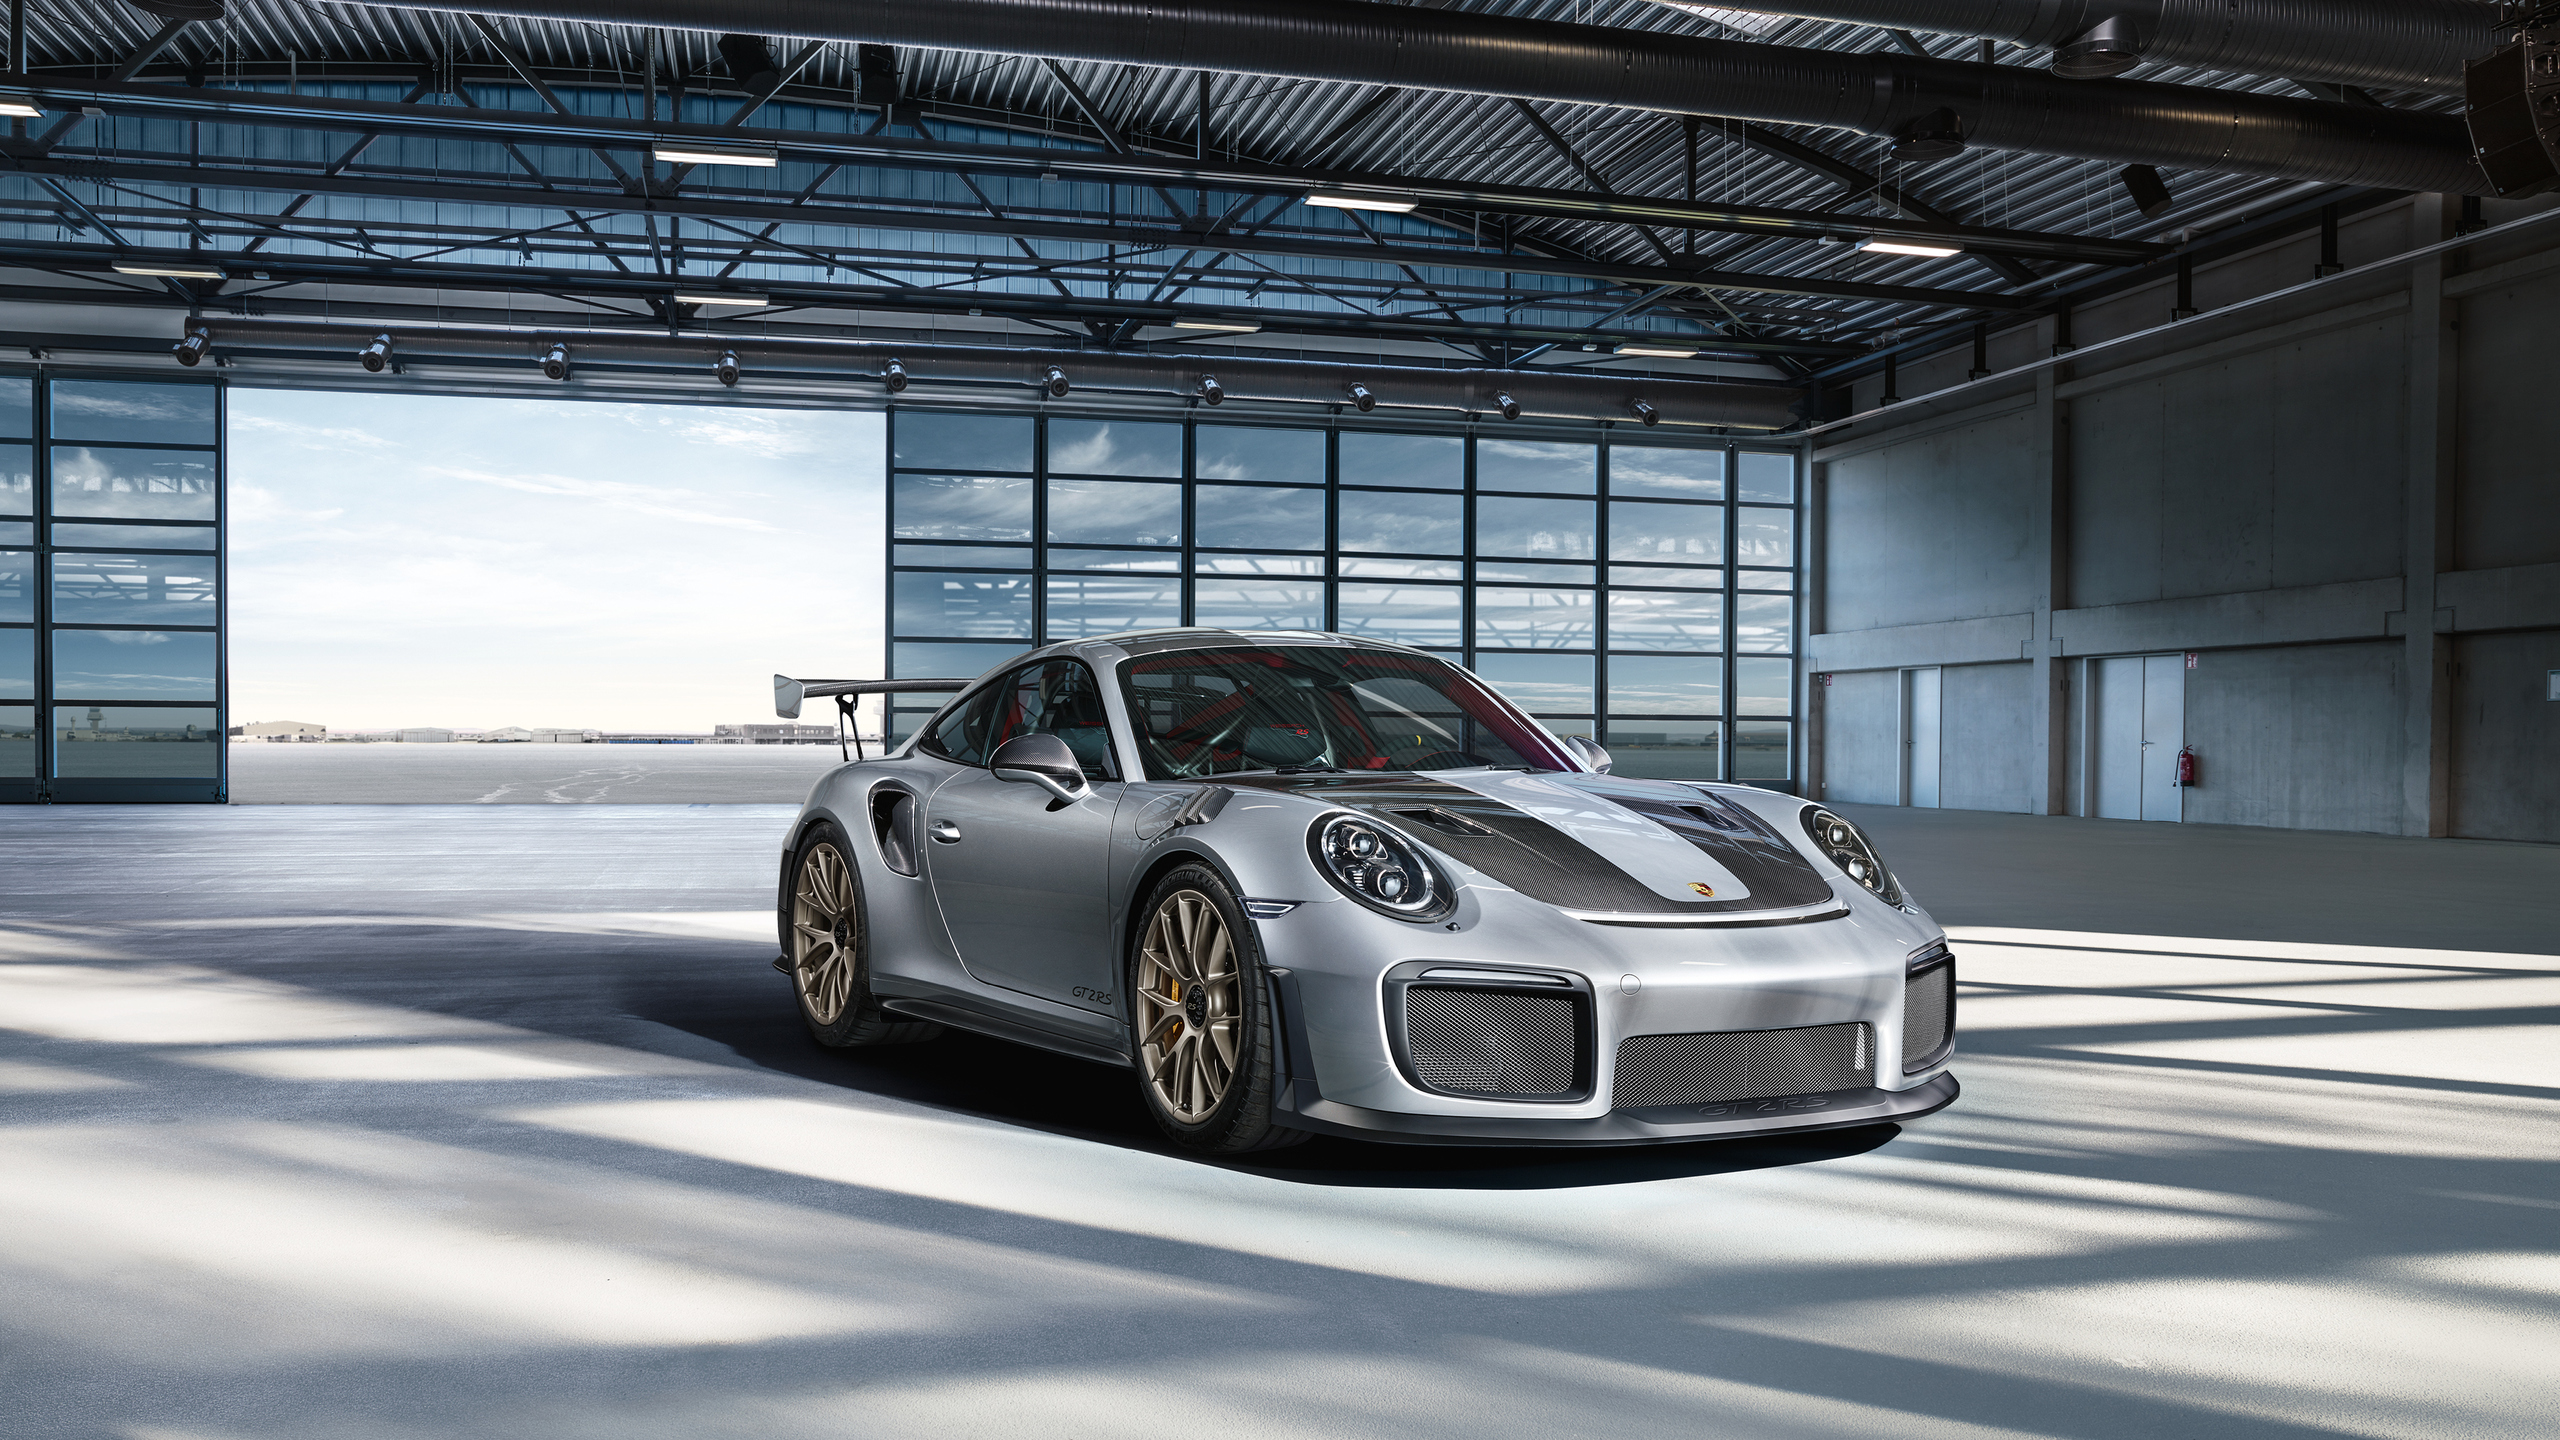 2560x1440 2019 Porsche 911 Gt2 Rs 4k 1440p Resolution Hd 4k Wallpapers Images Backgrounds Photos And Pictures